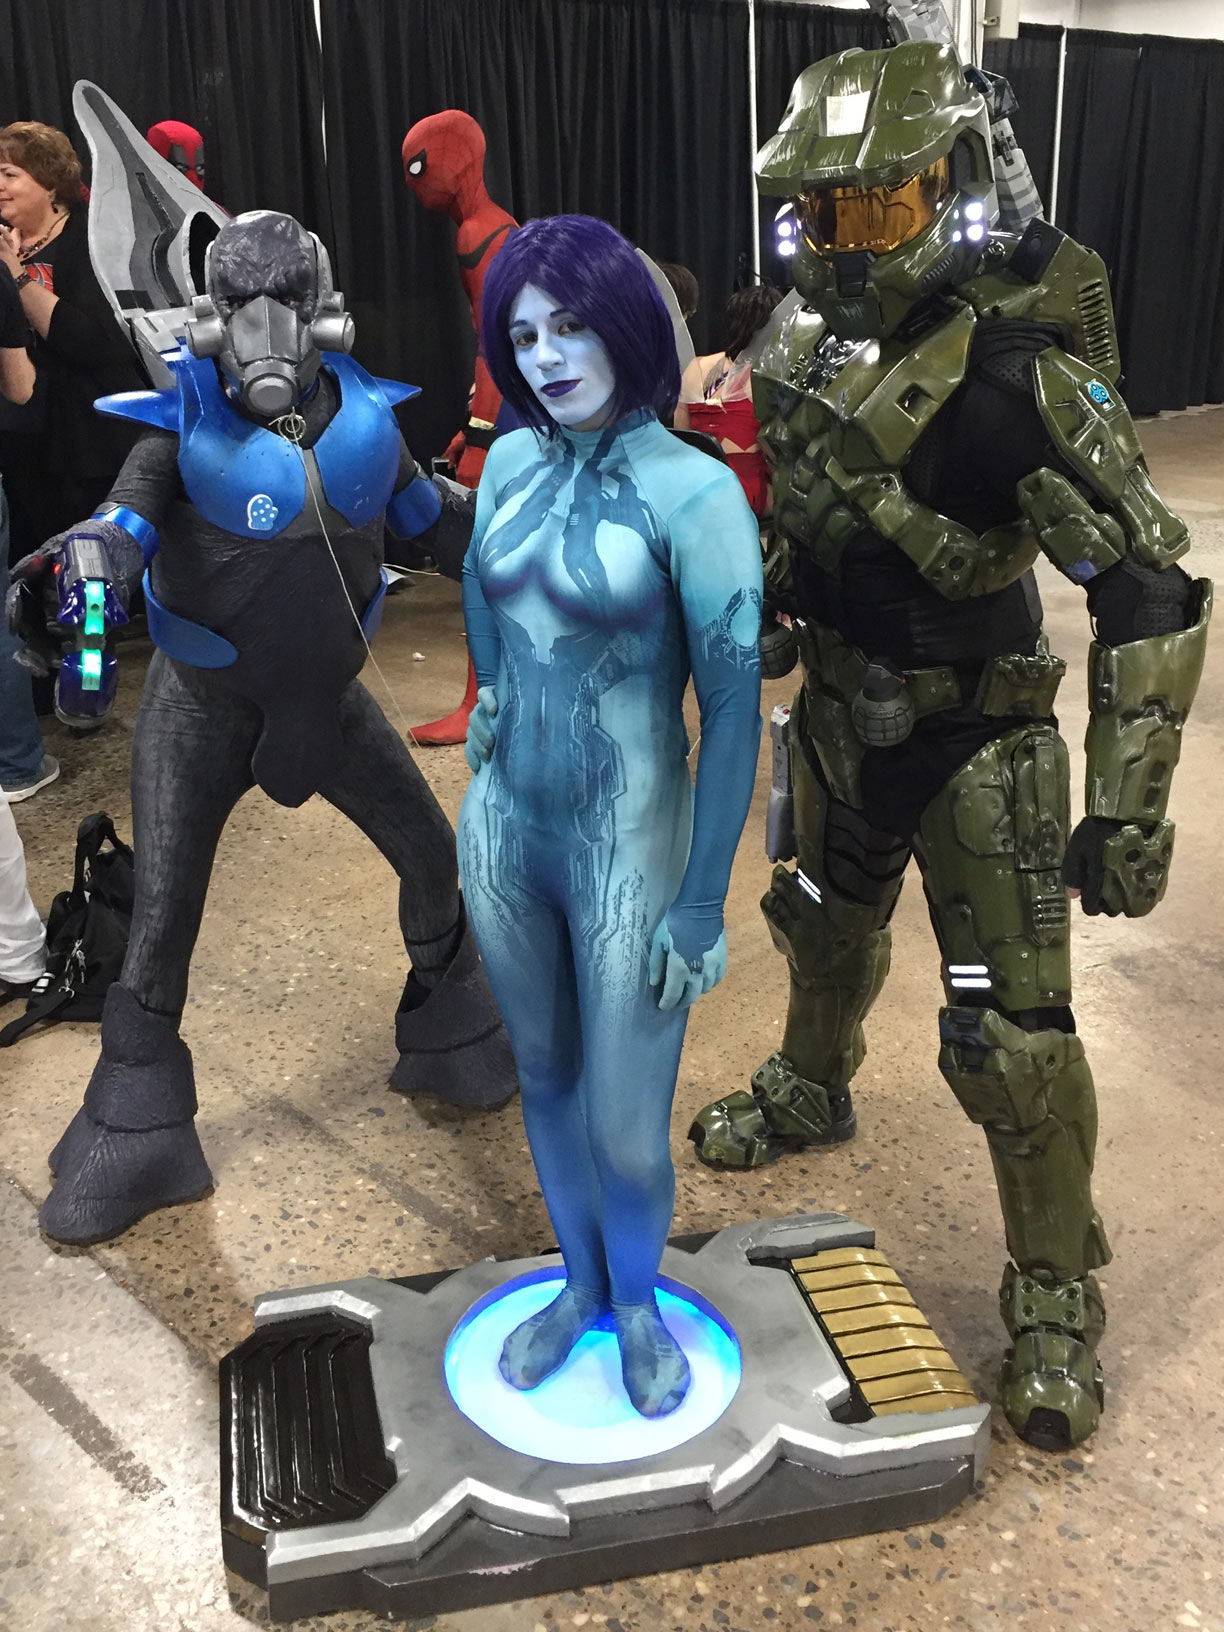 The Great Philadelphia Comic Con 2017 Cosplay Day 2 Master Chief, Cortana and Grunt